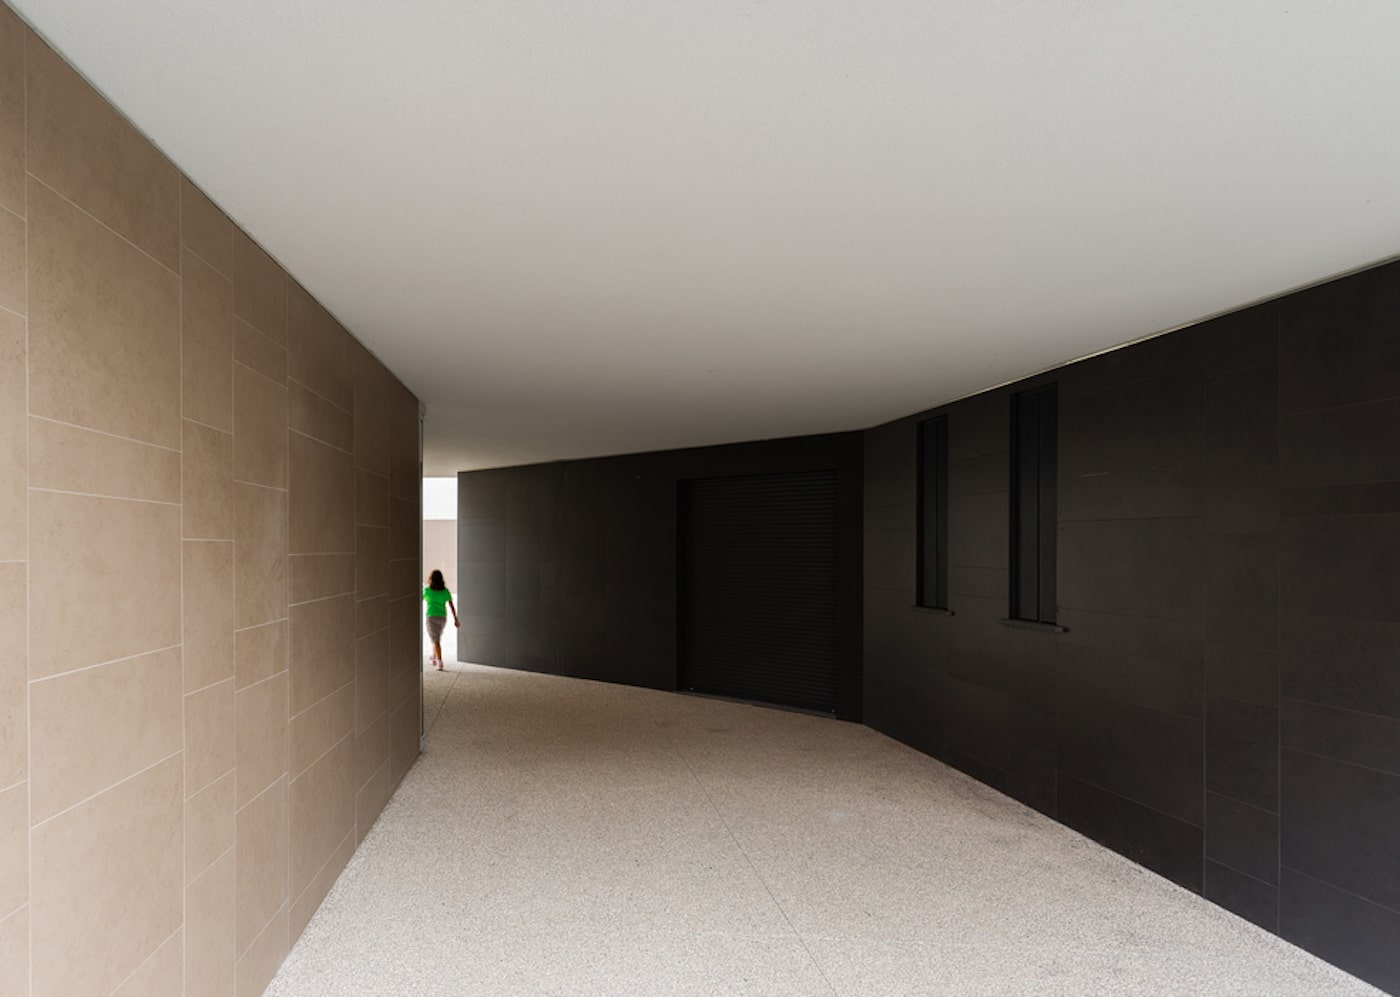 Black curved entry wall